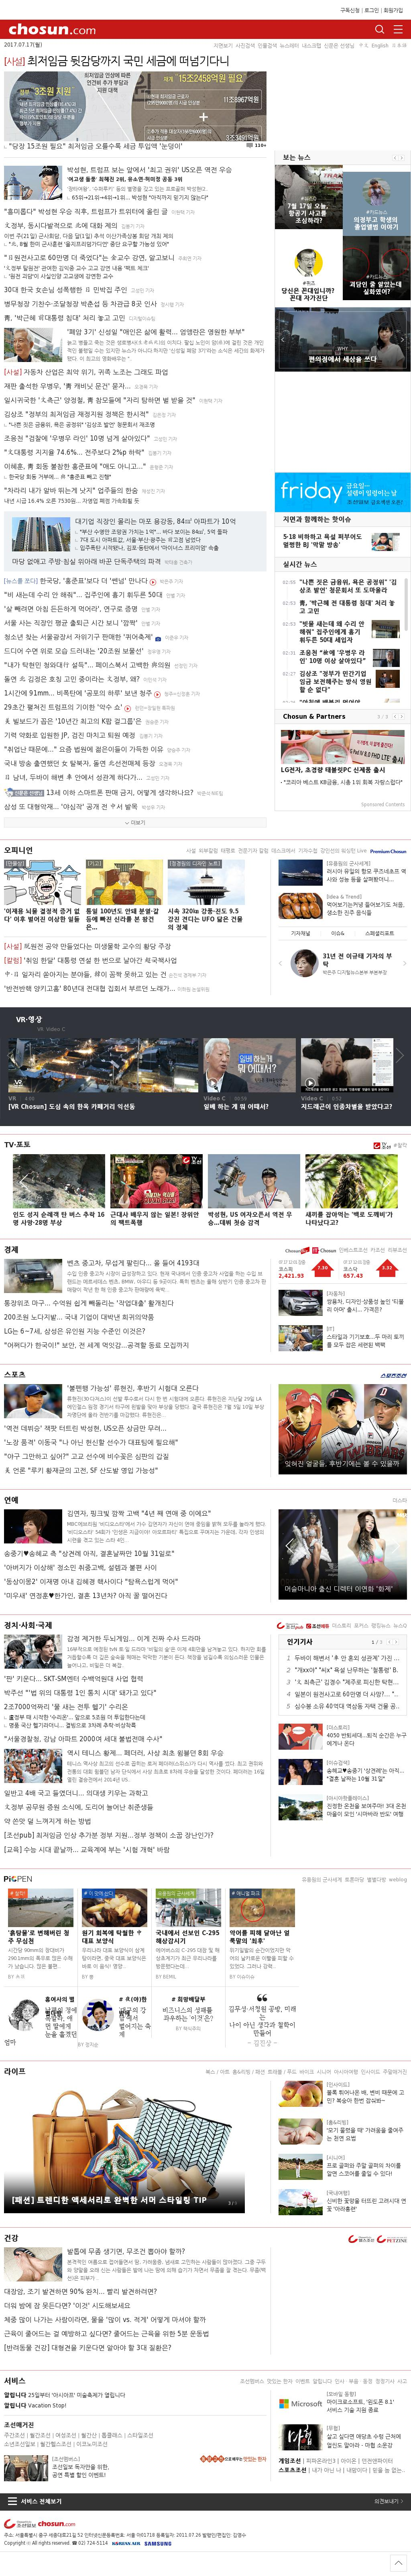 chosun.com at Monday July 17, 2017, 3:02 a.m. UTC